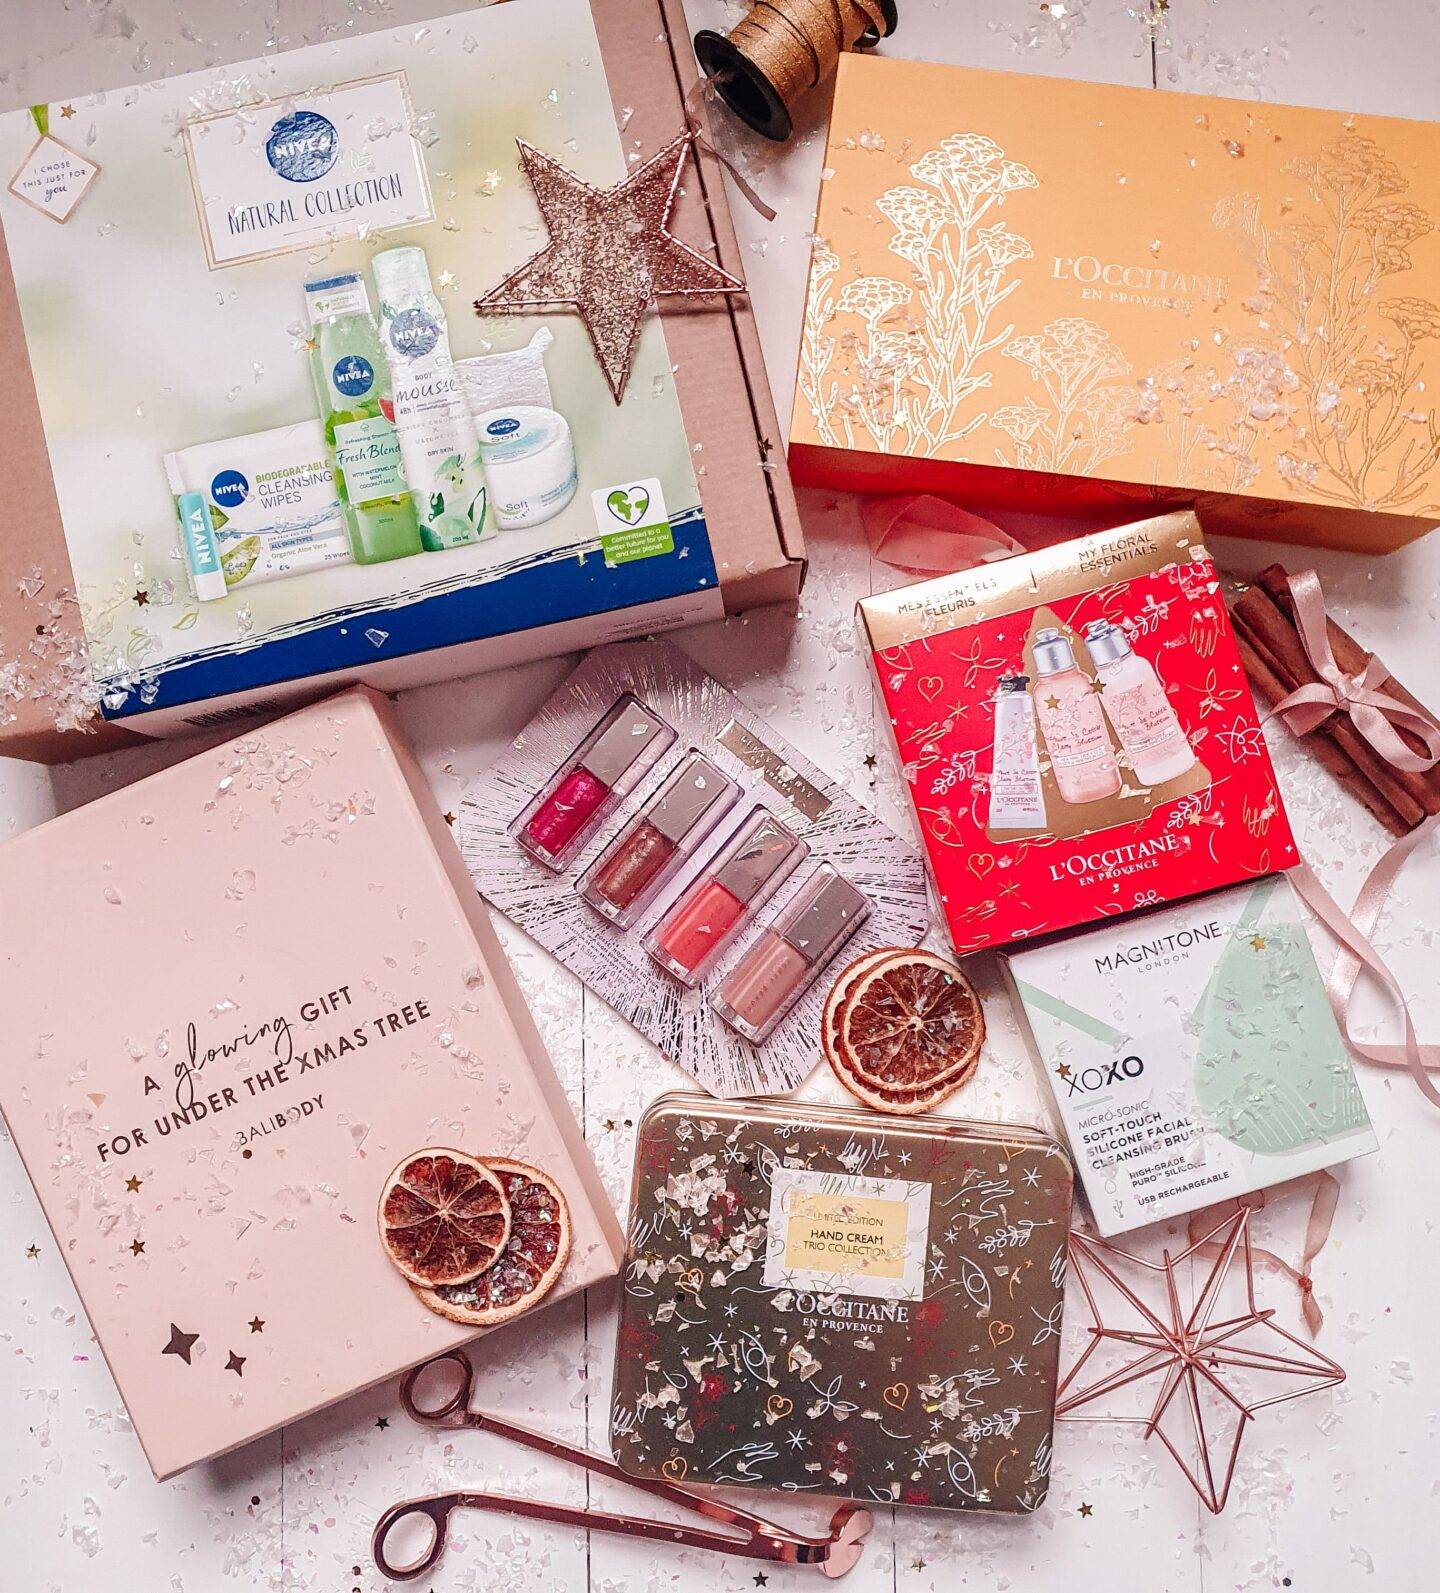 Beauty Christmas Gift Ideas for Her